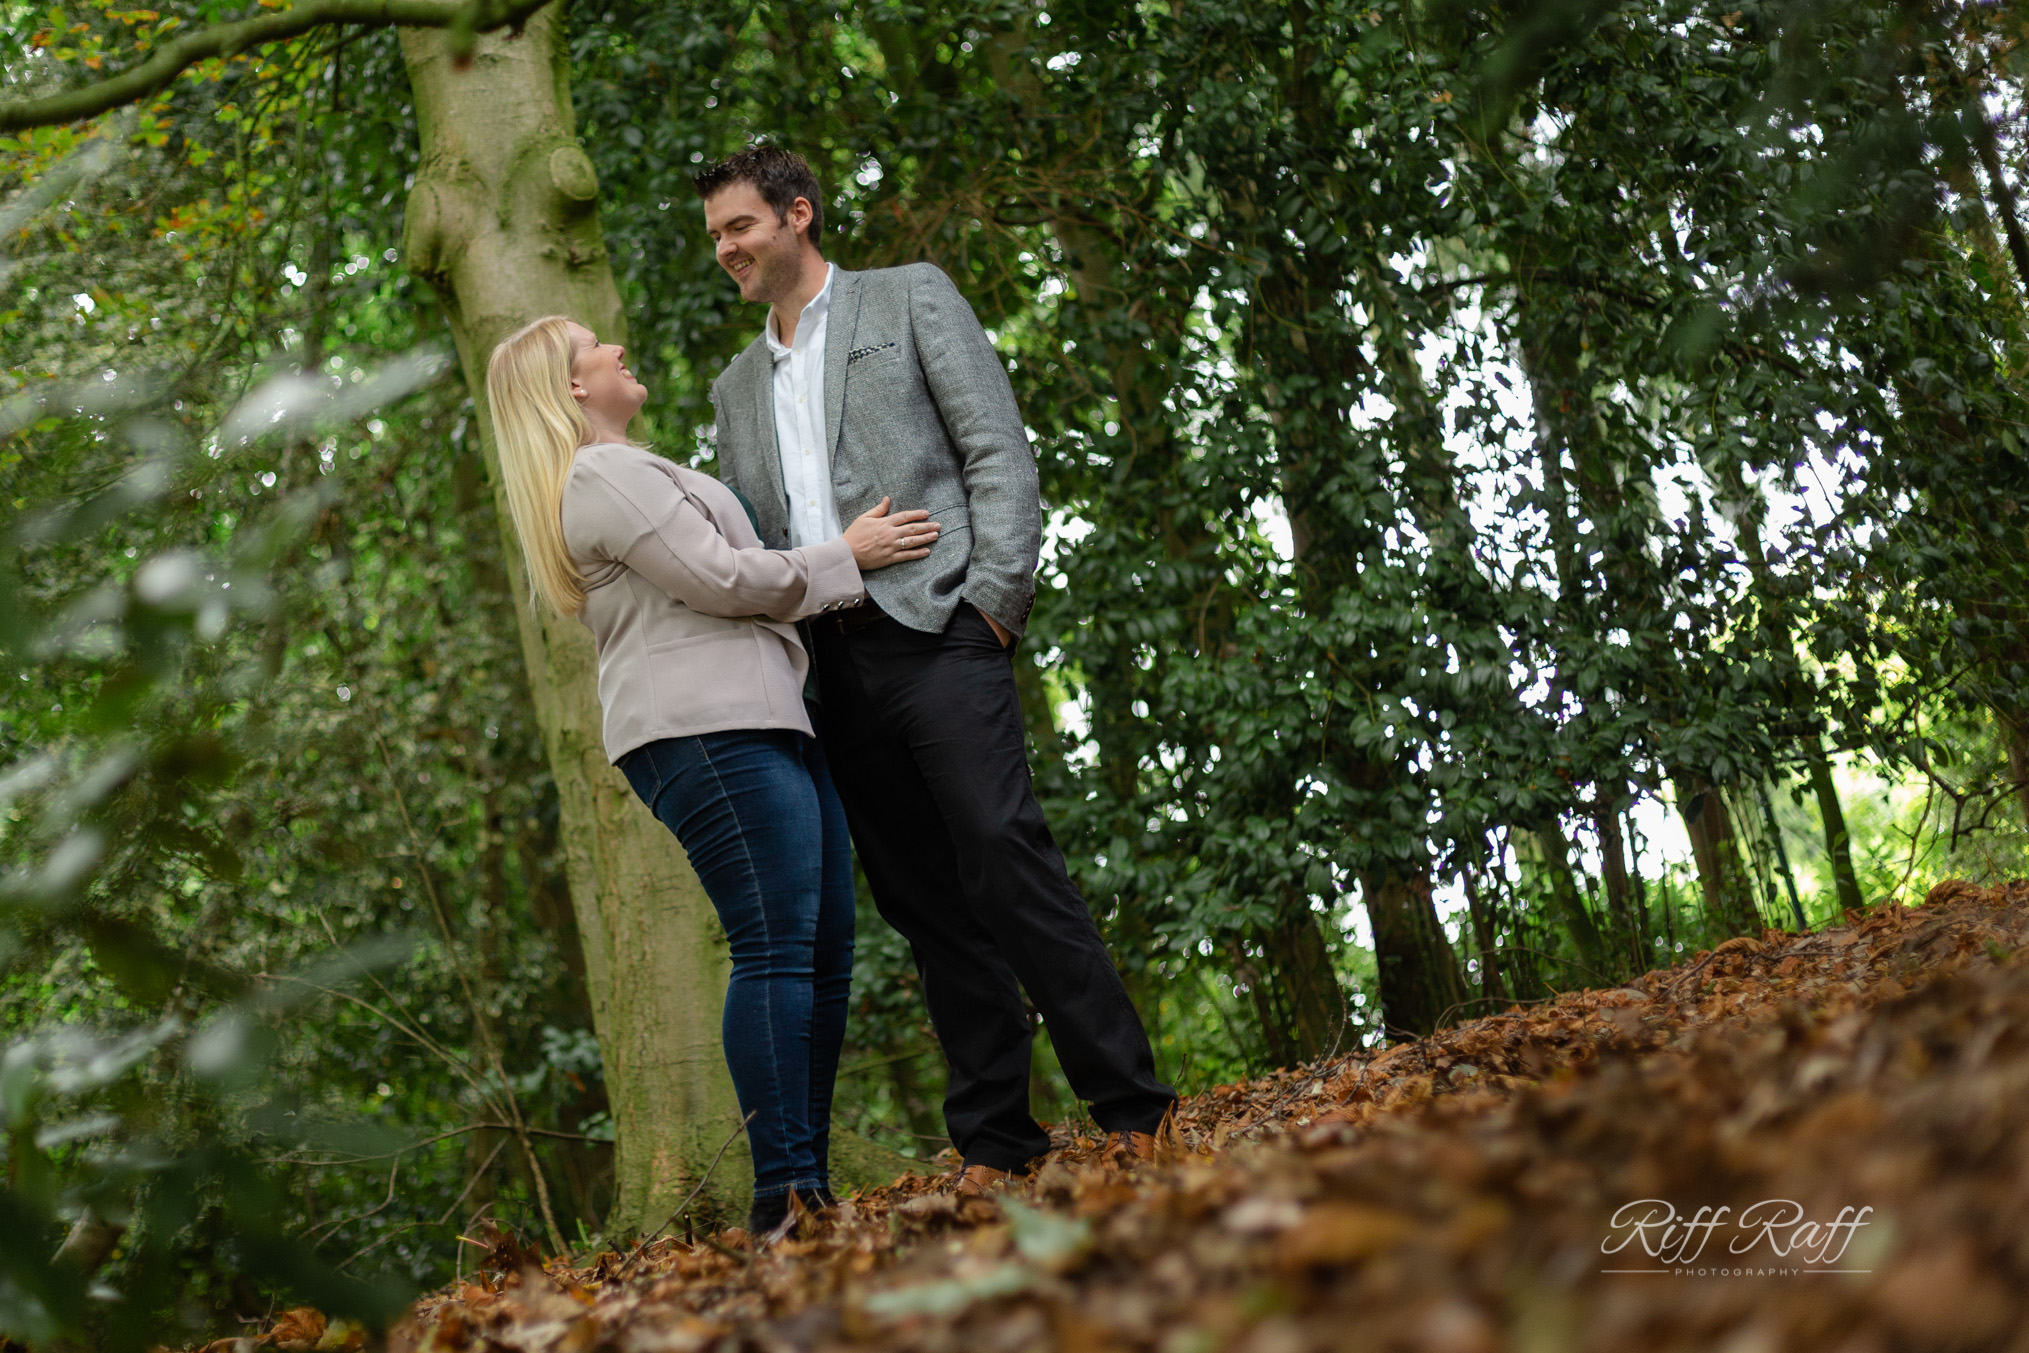 Fiona & Adam Engagement Shoot Blog-014.jpg